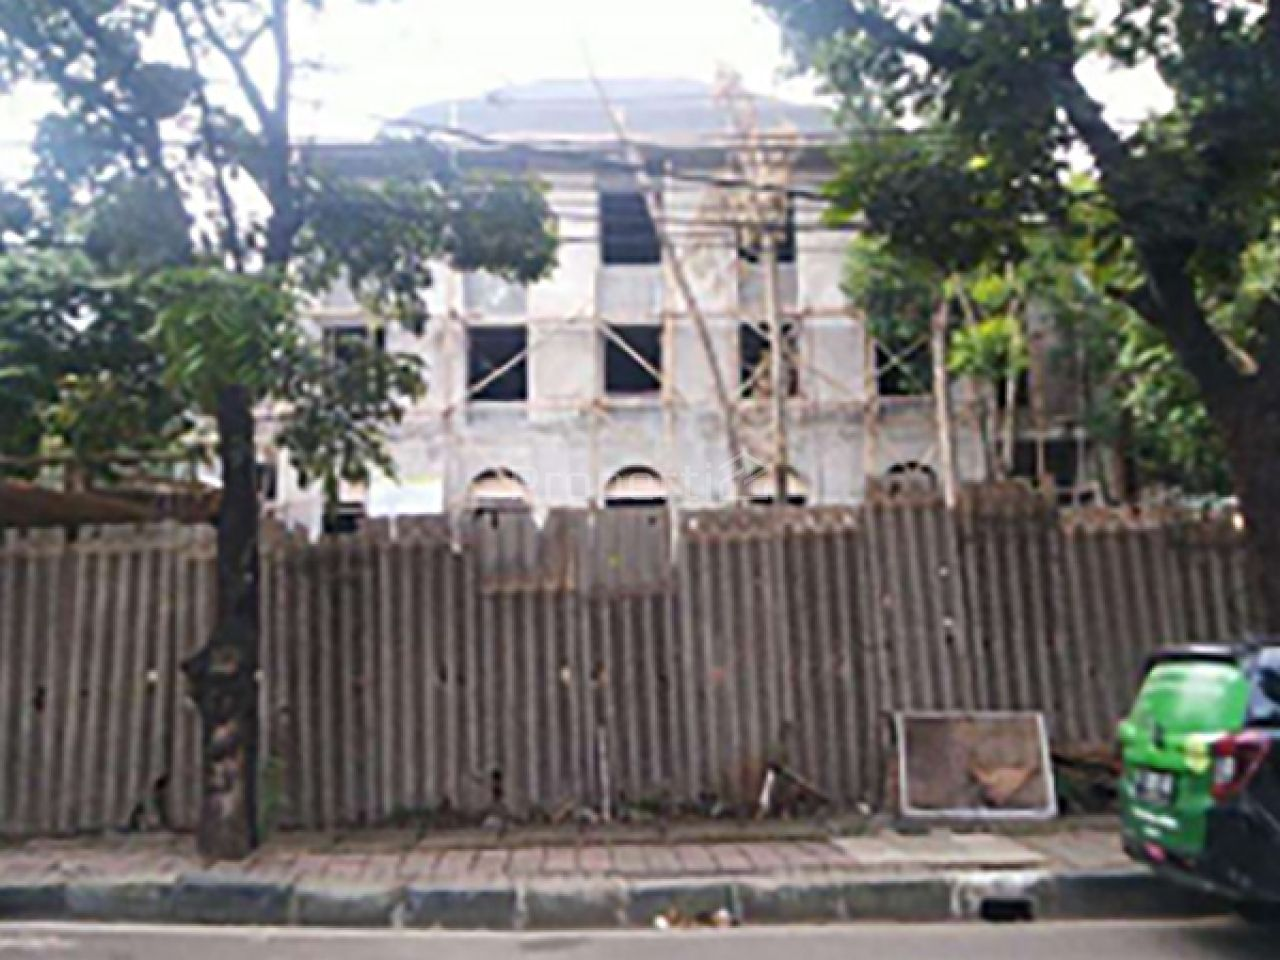 Land and Commercial Building Investment in North Meruya, DKI Jakarta